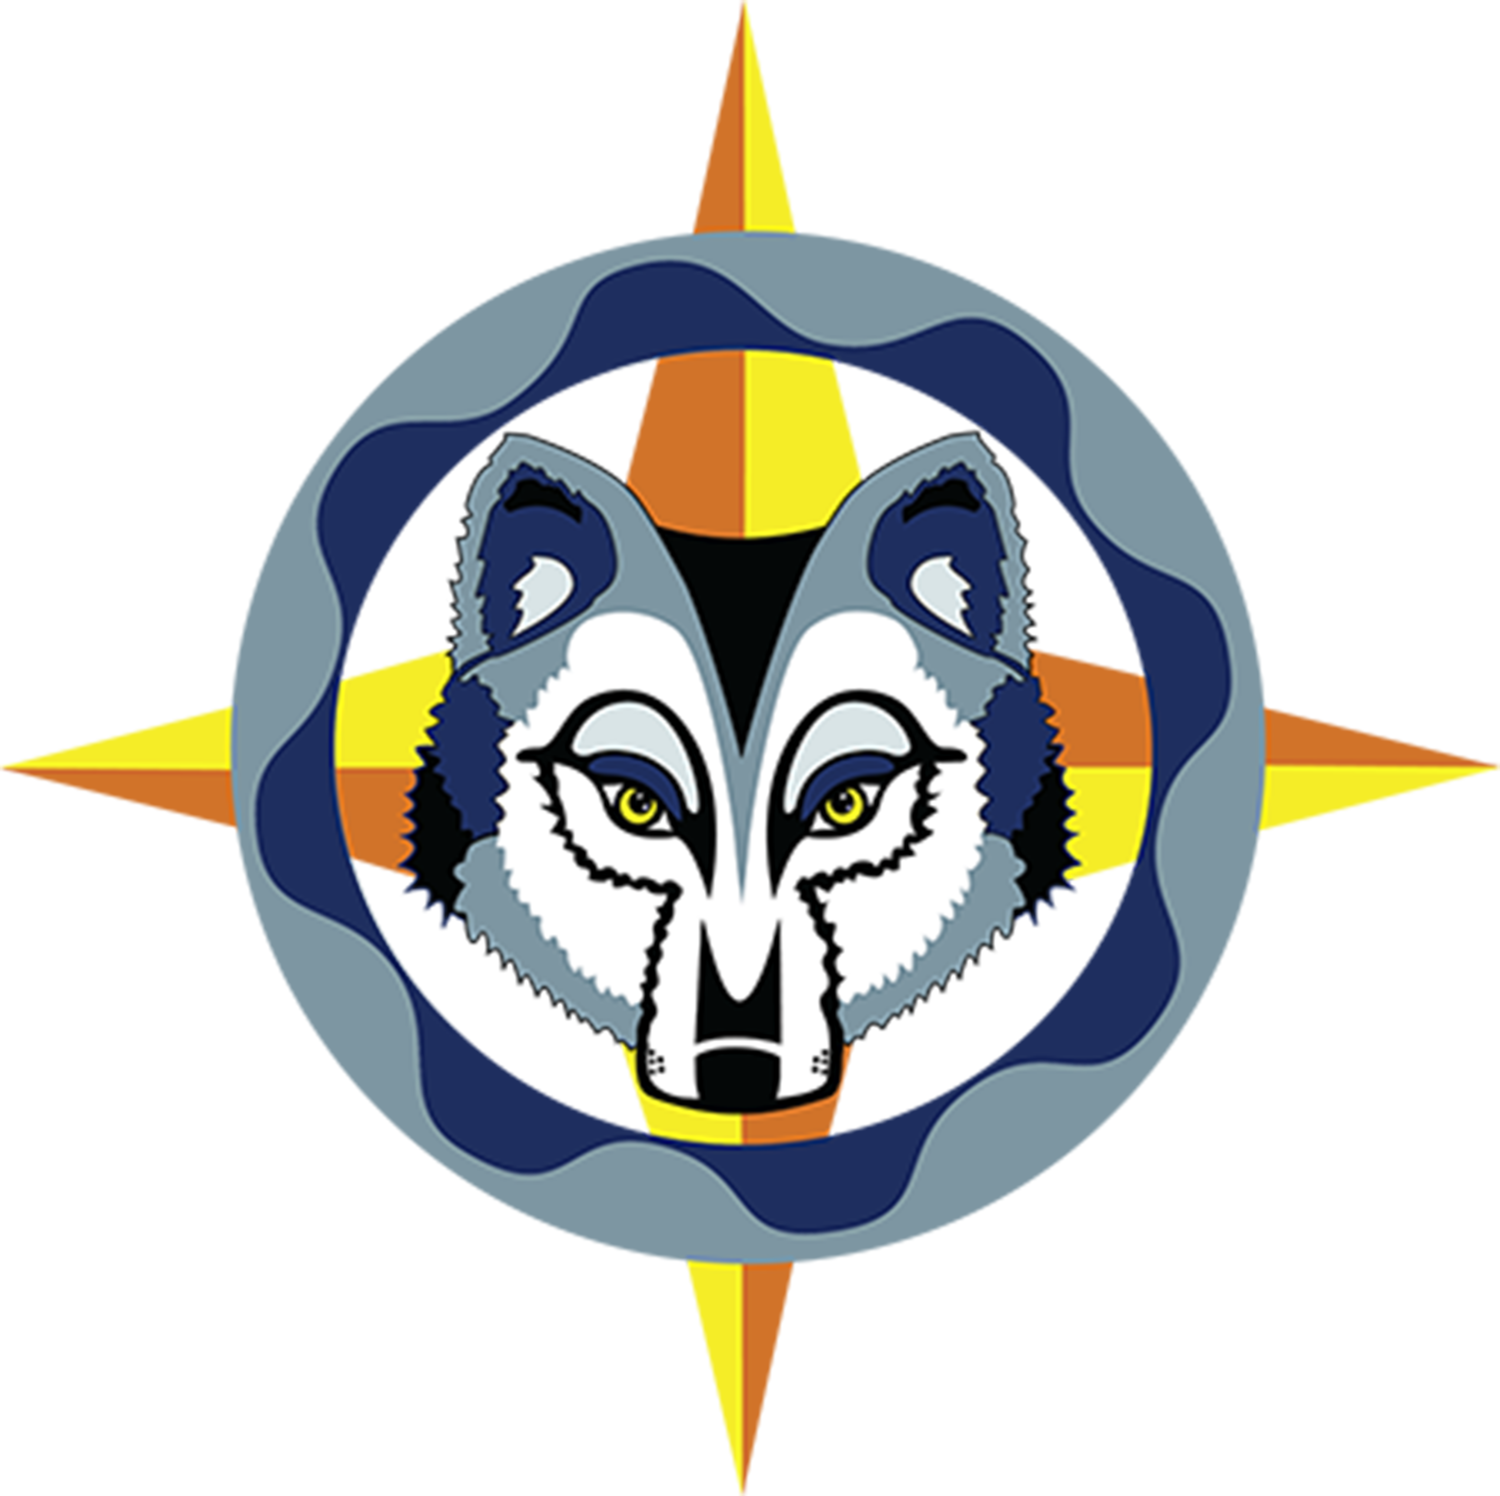 This logo for the Wolf Creek generating station was designed by Blackbear Bosin.